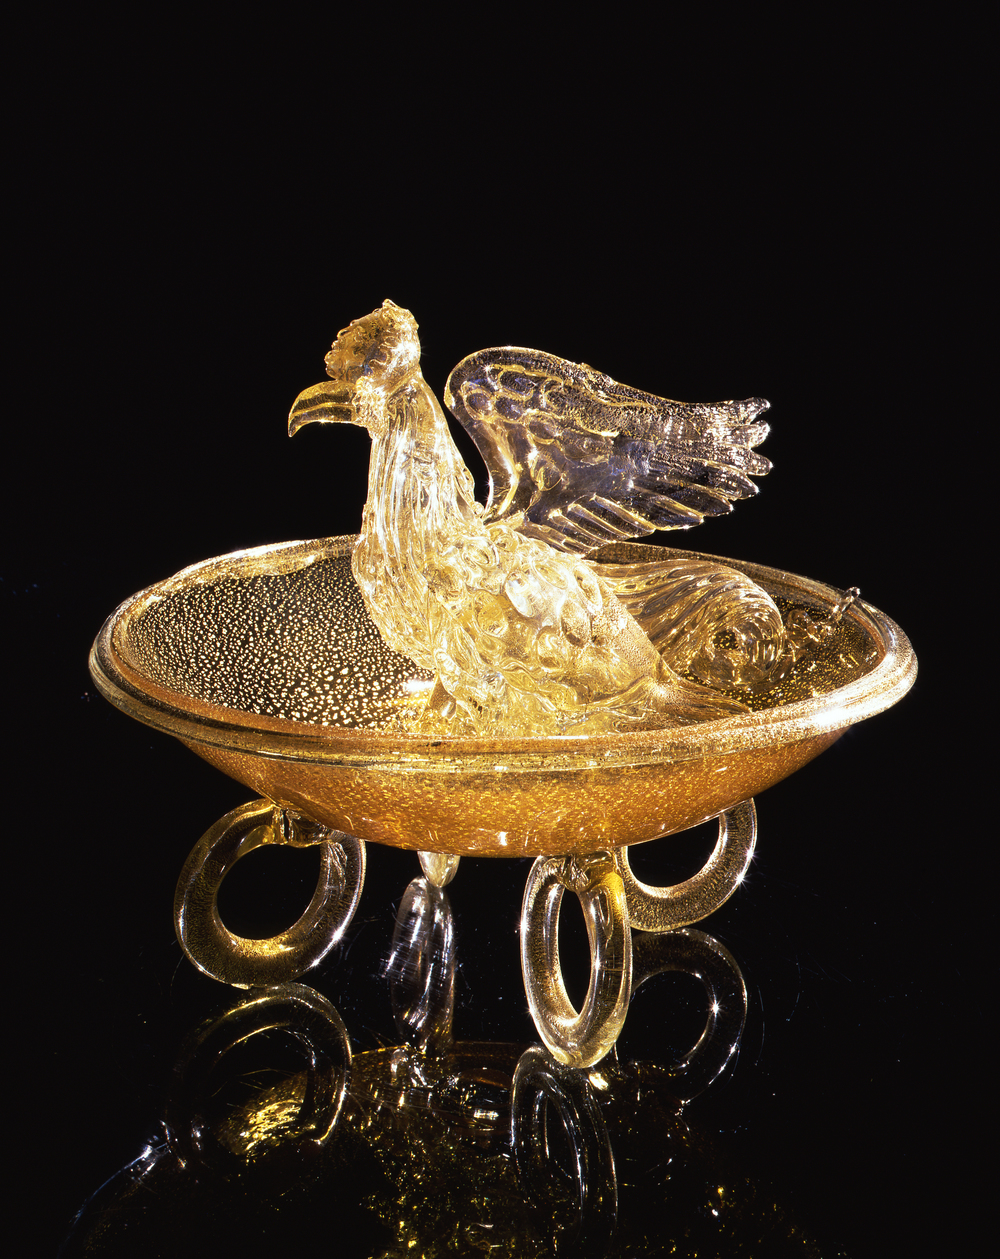 Dale Chihuly,  Spotted Gold Putti Venetian with Eagle  (1994, glass, 16 x 19 x 19 inches)